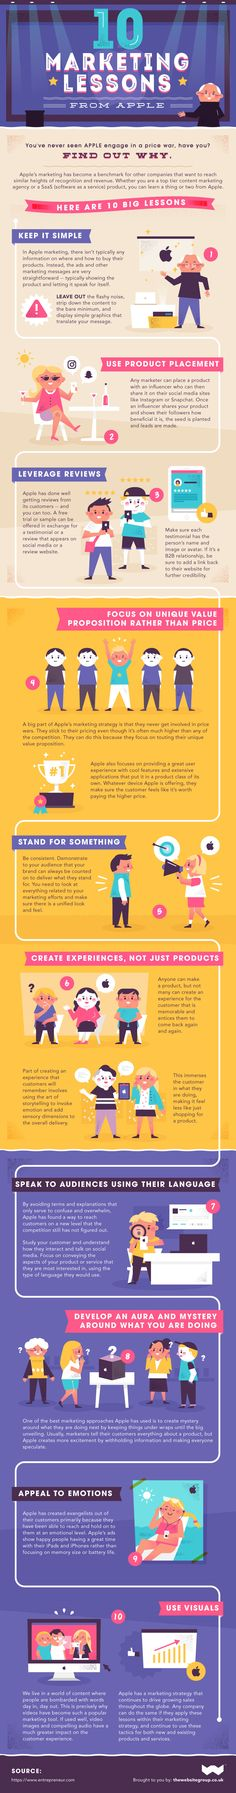 10 Things Your Business Can Learn from Apple's Marketing #Infographic